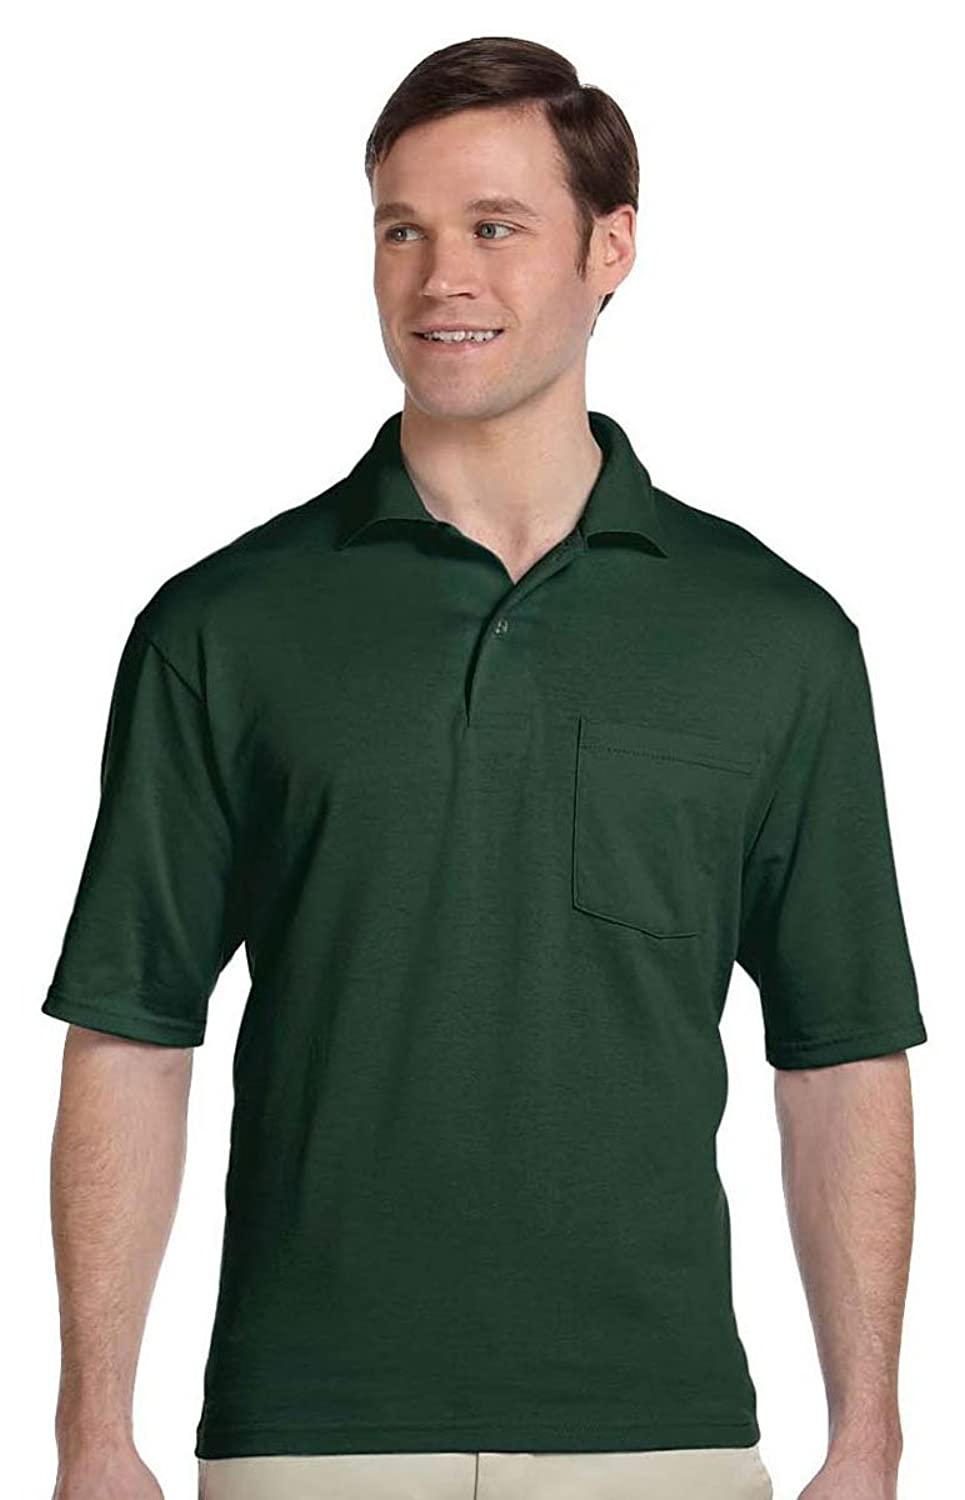 Jerzees 56 oz, 50/50 Jersey Pocket Polo with SpotShield, SAFETY GREEN